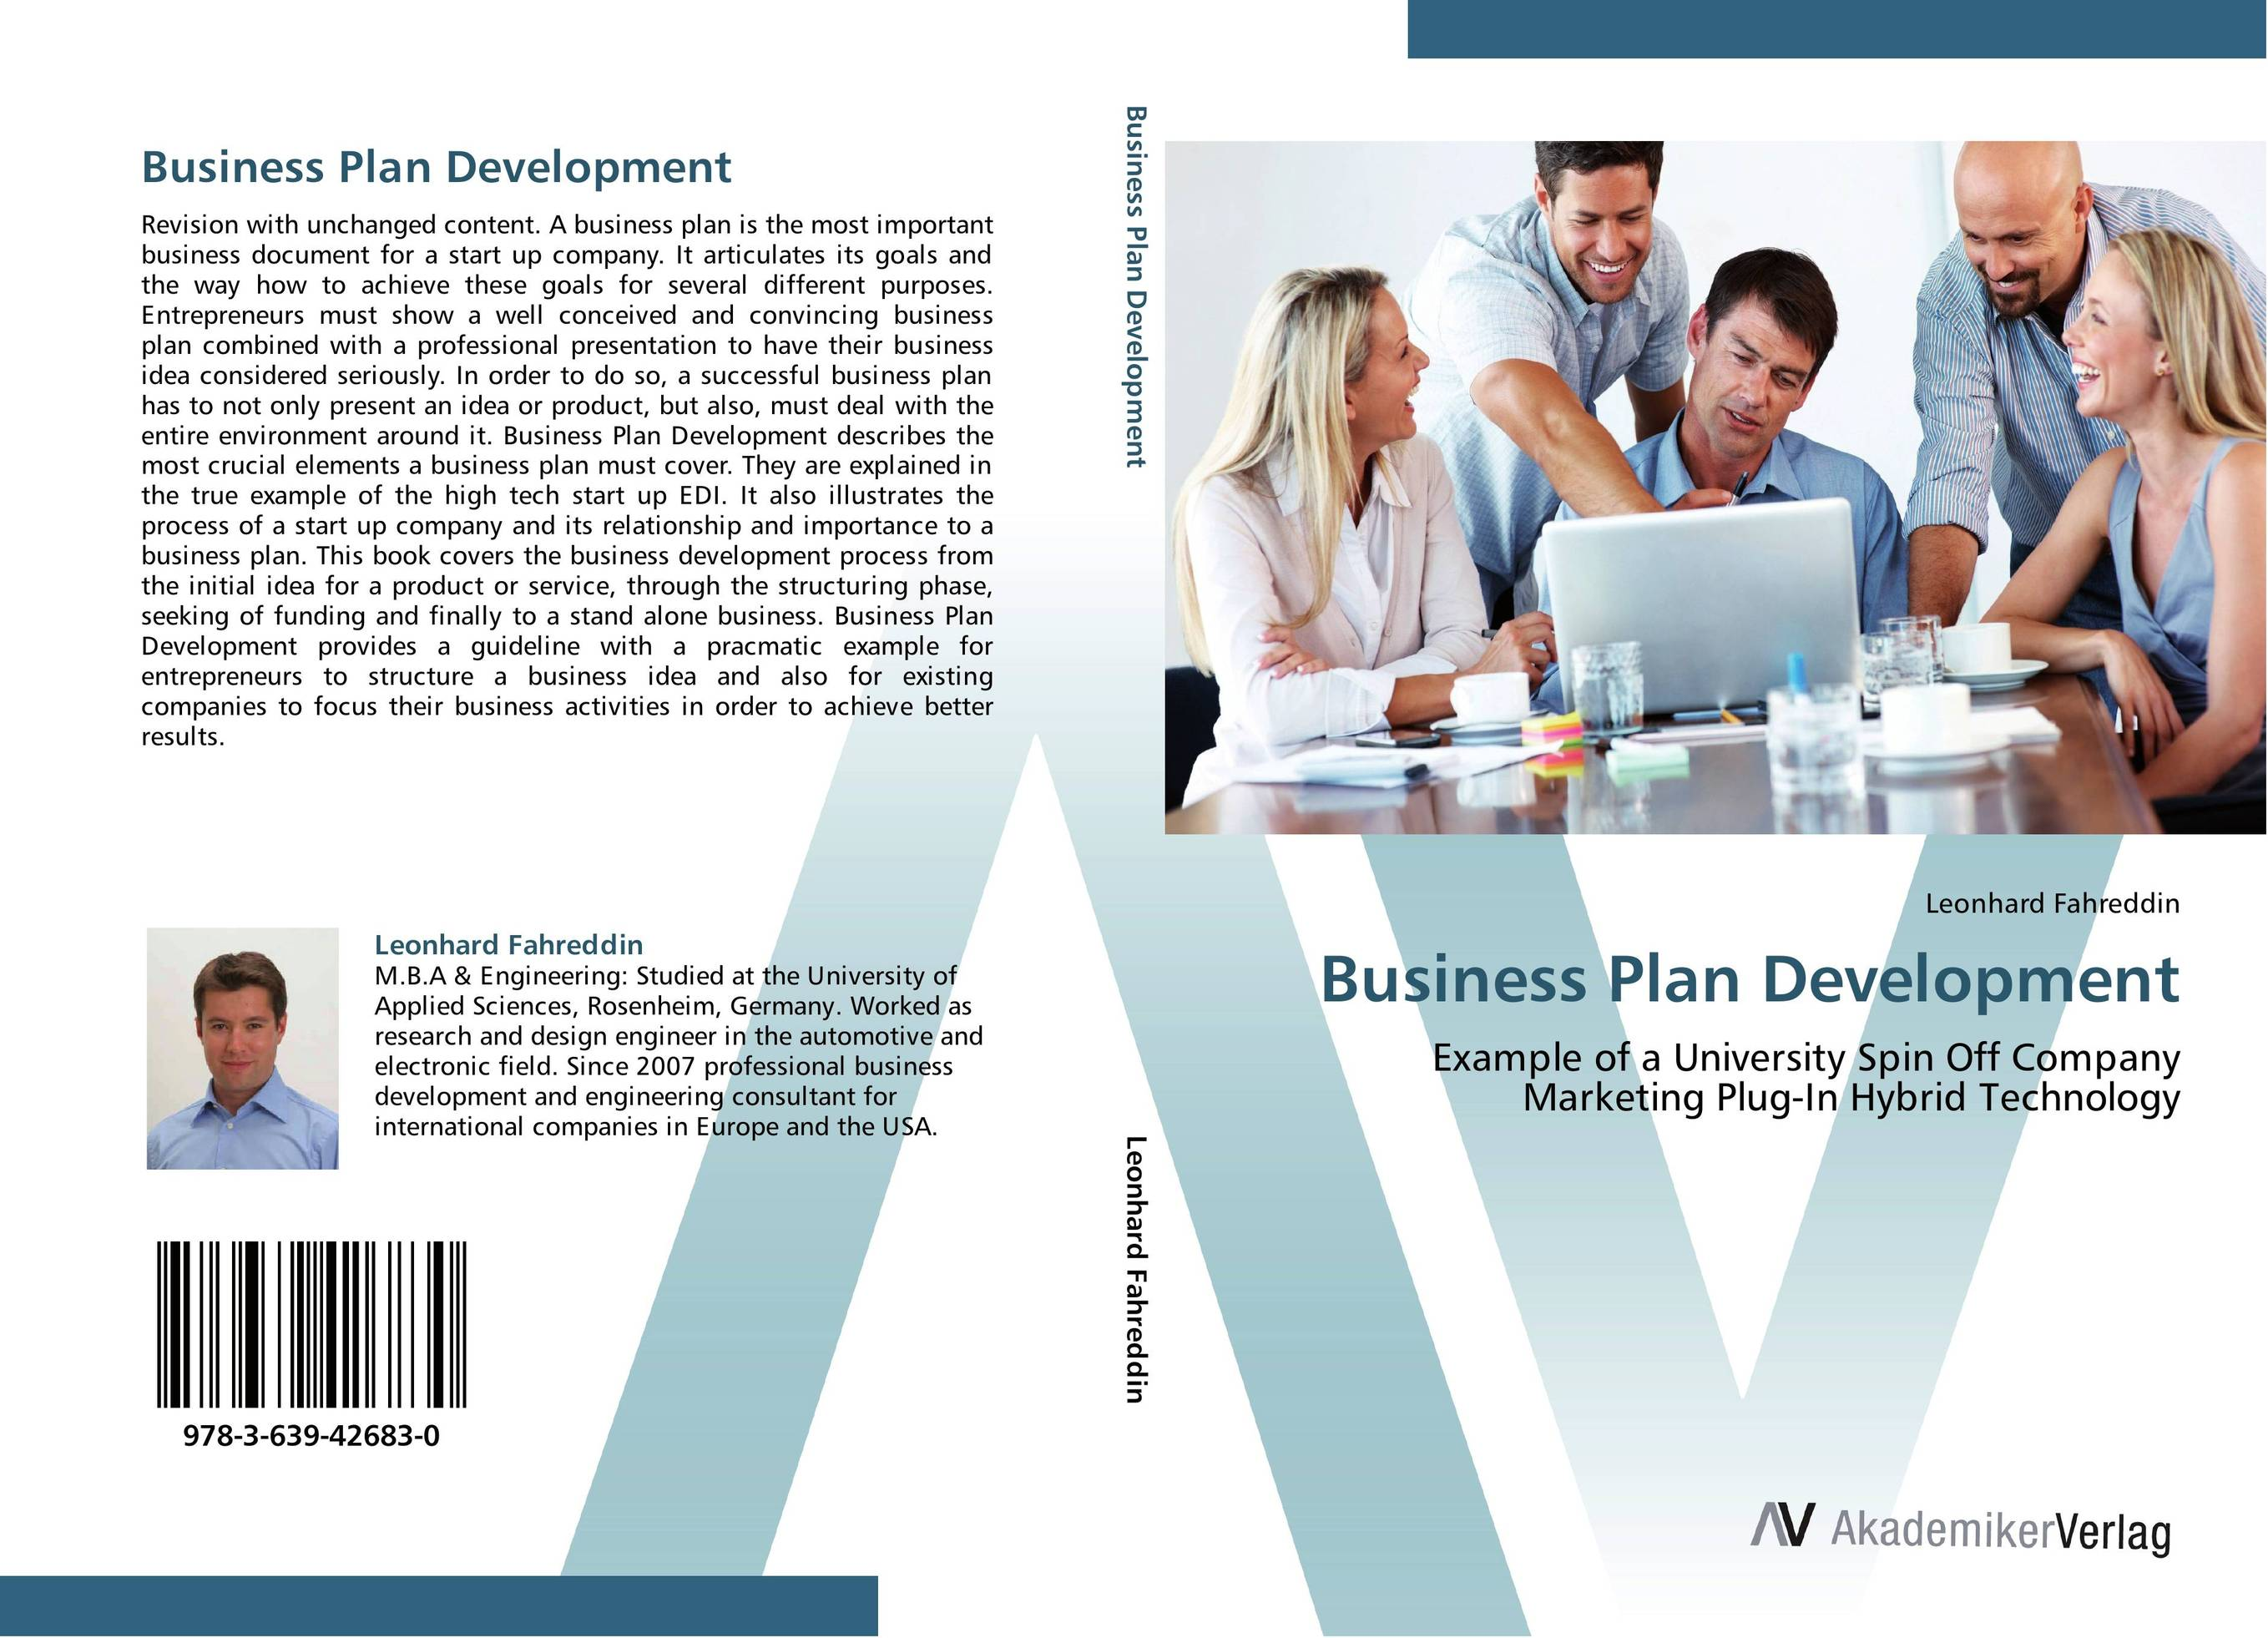 Business Plan Development business plan for a start up of an information brokering company